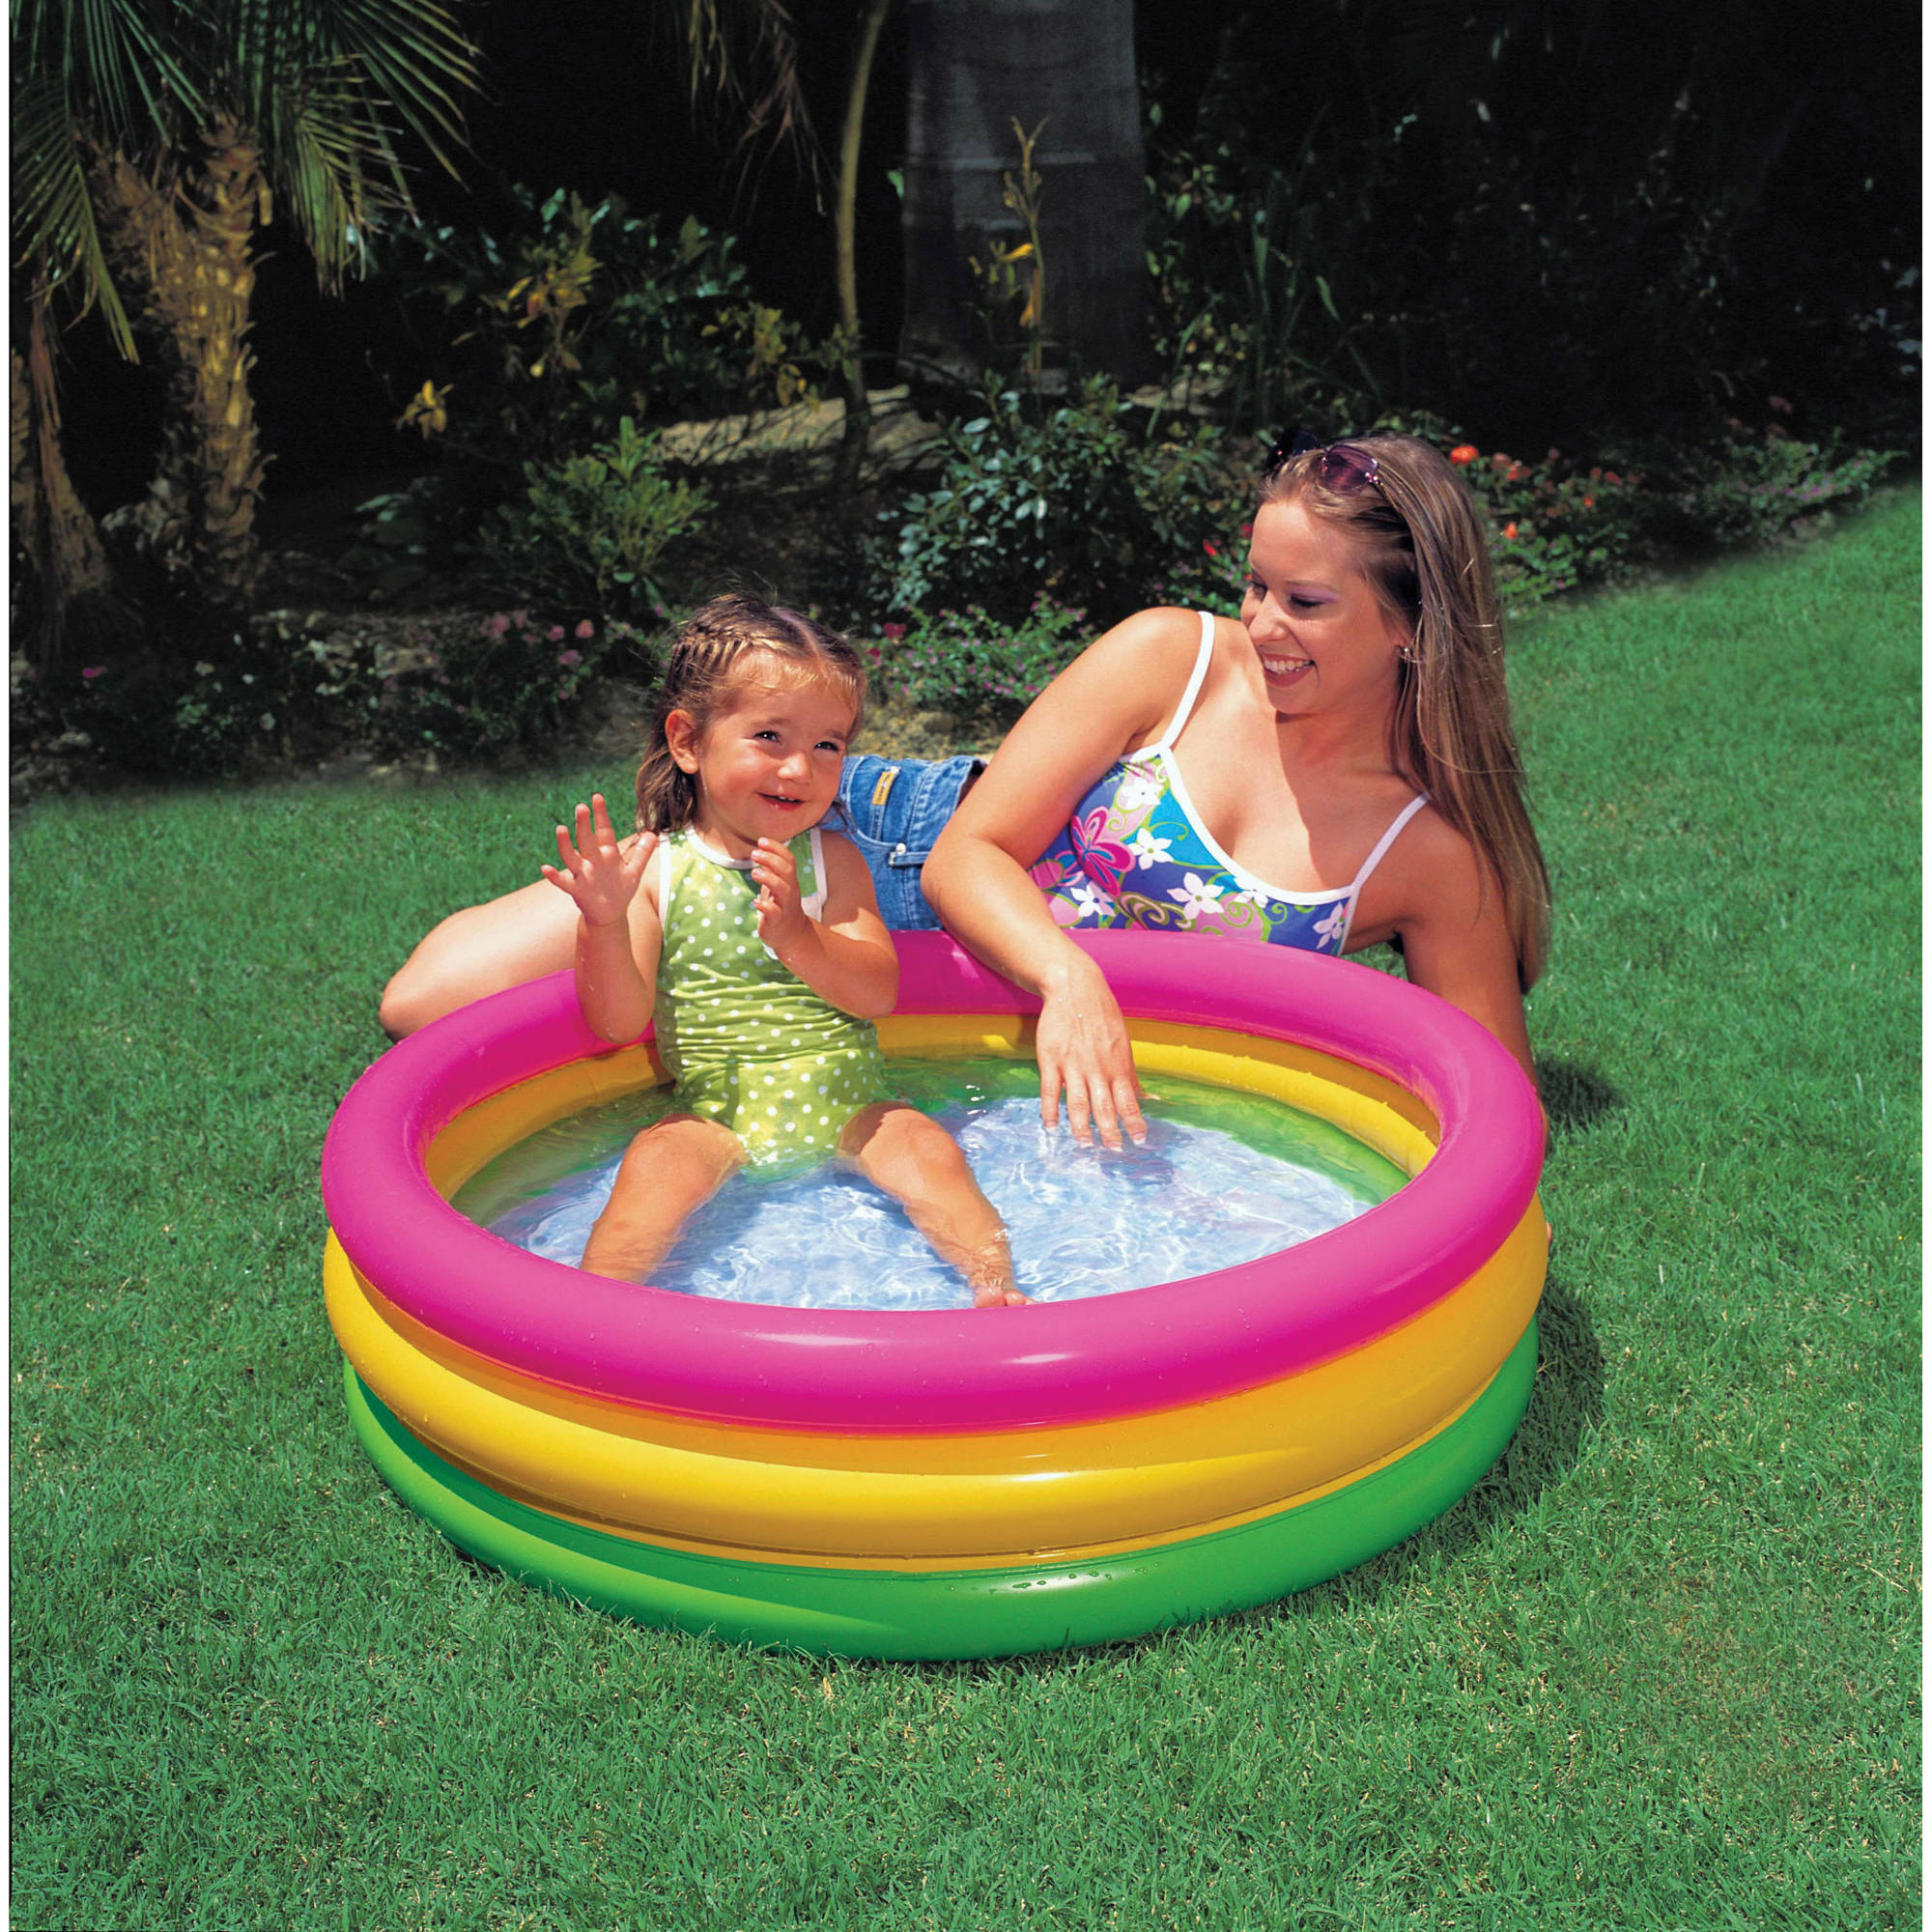 Intex Sunset Glow Inflatable Colorful Baby Swimming Pool ...